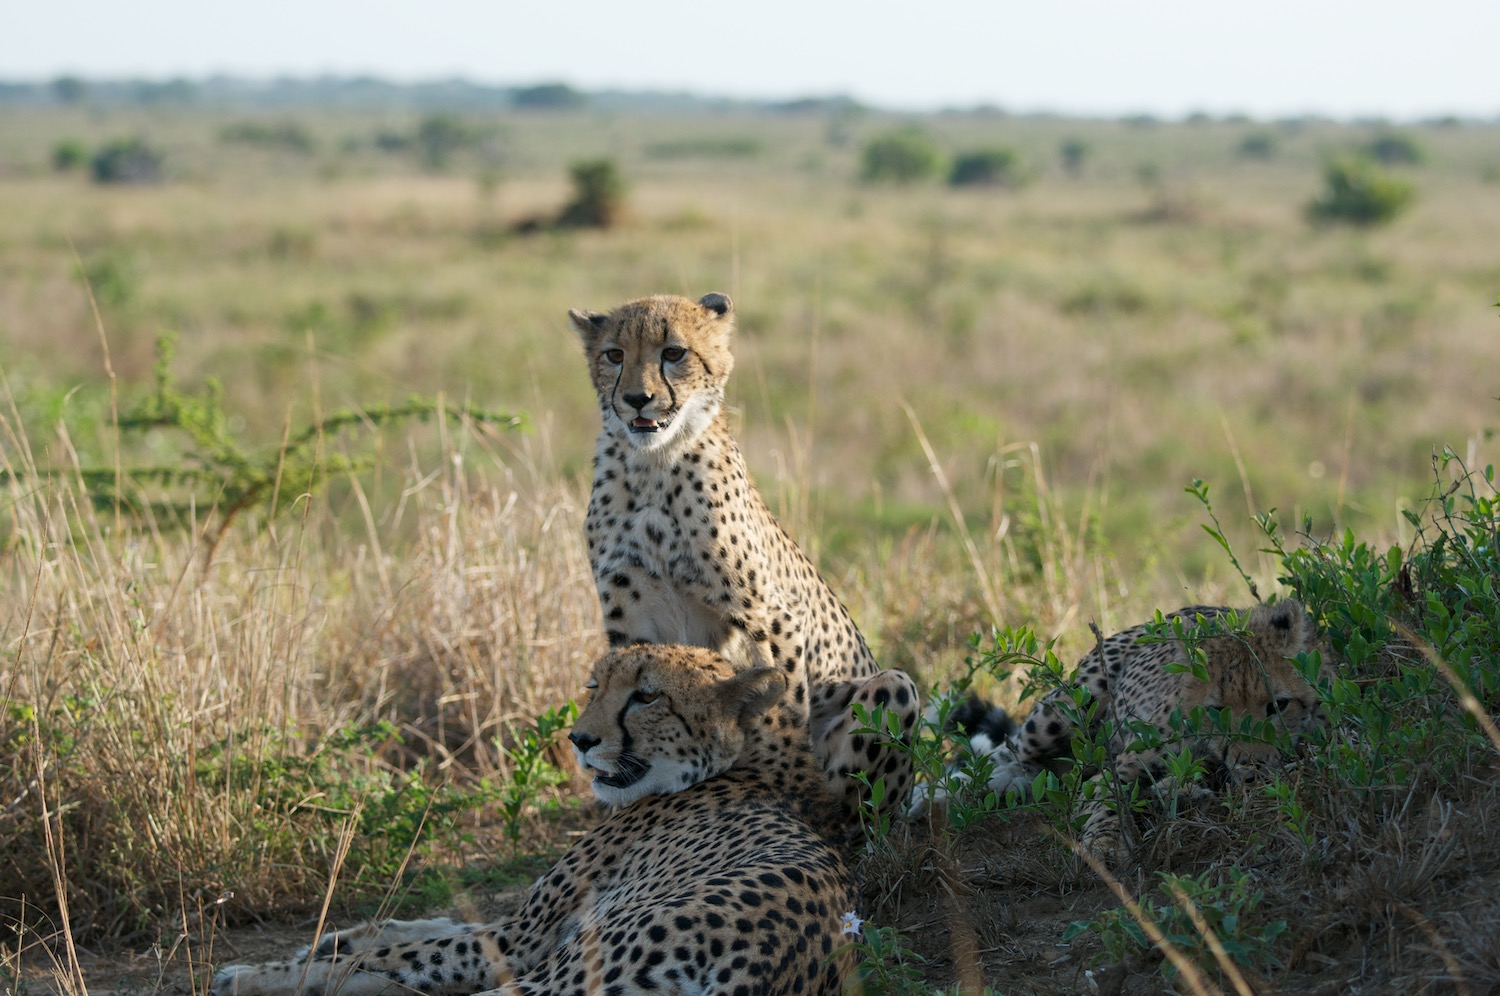 Cheetah cub spots the wildebeest herd.